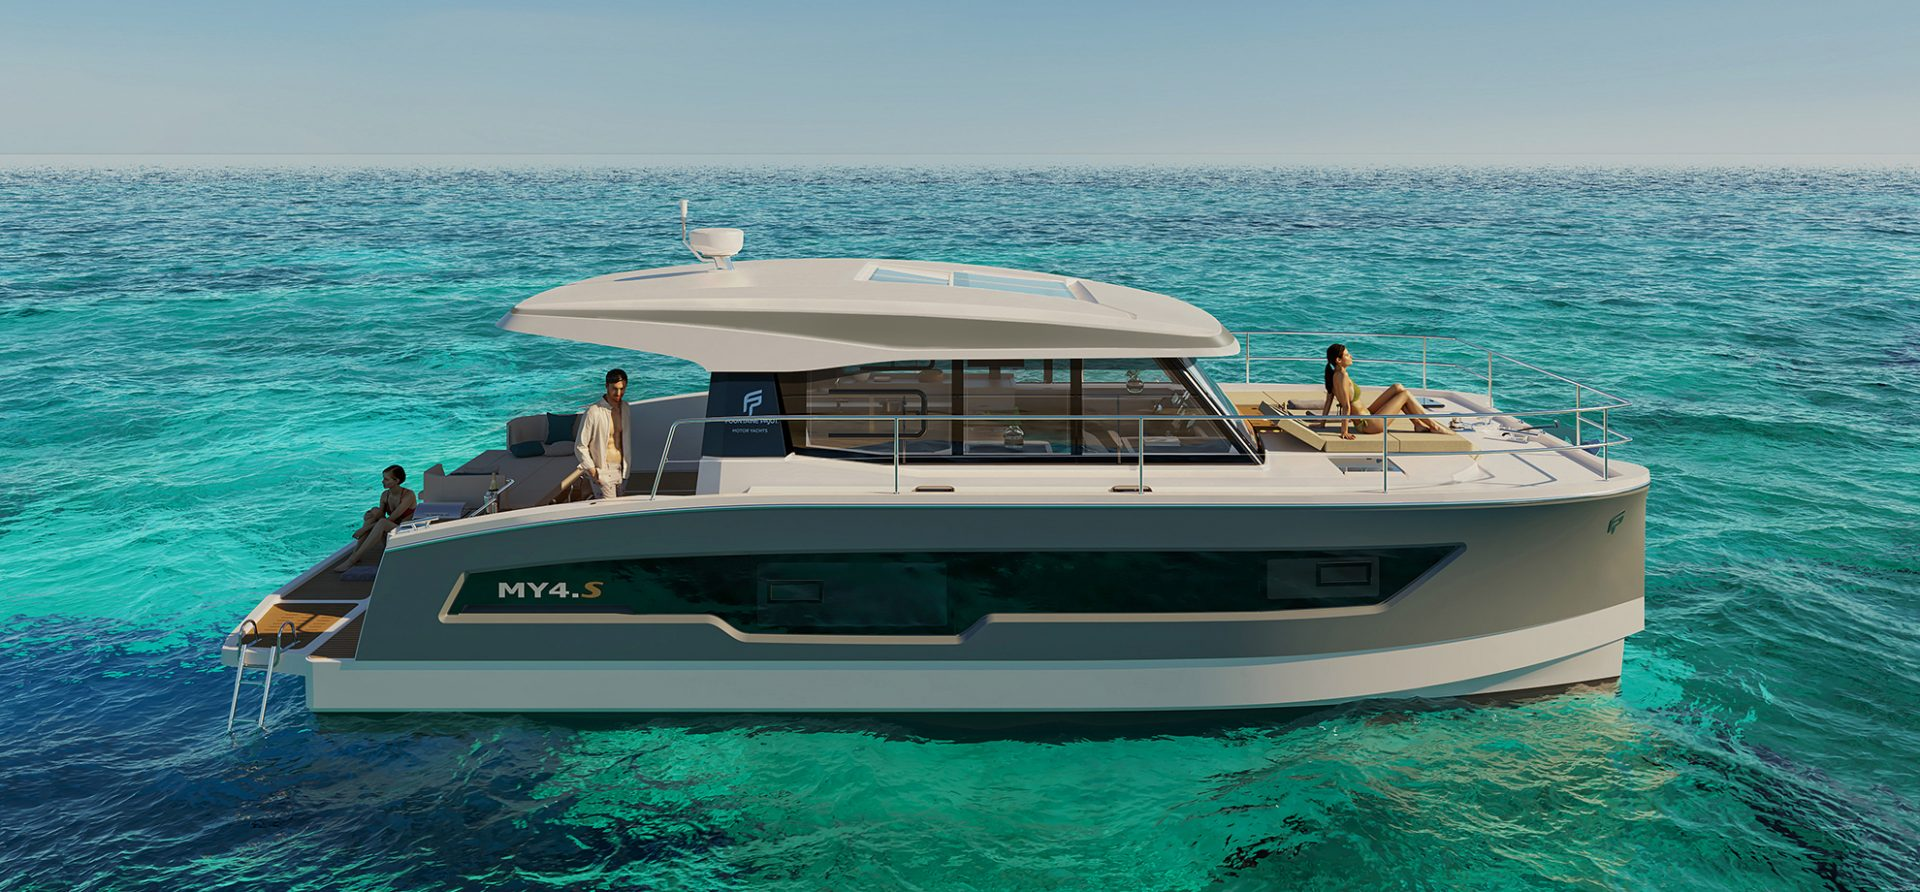 Fountaine Pajot MY4.S anchored side profile